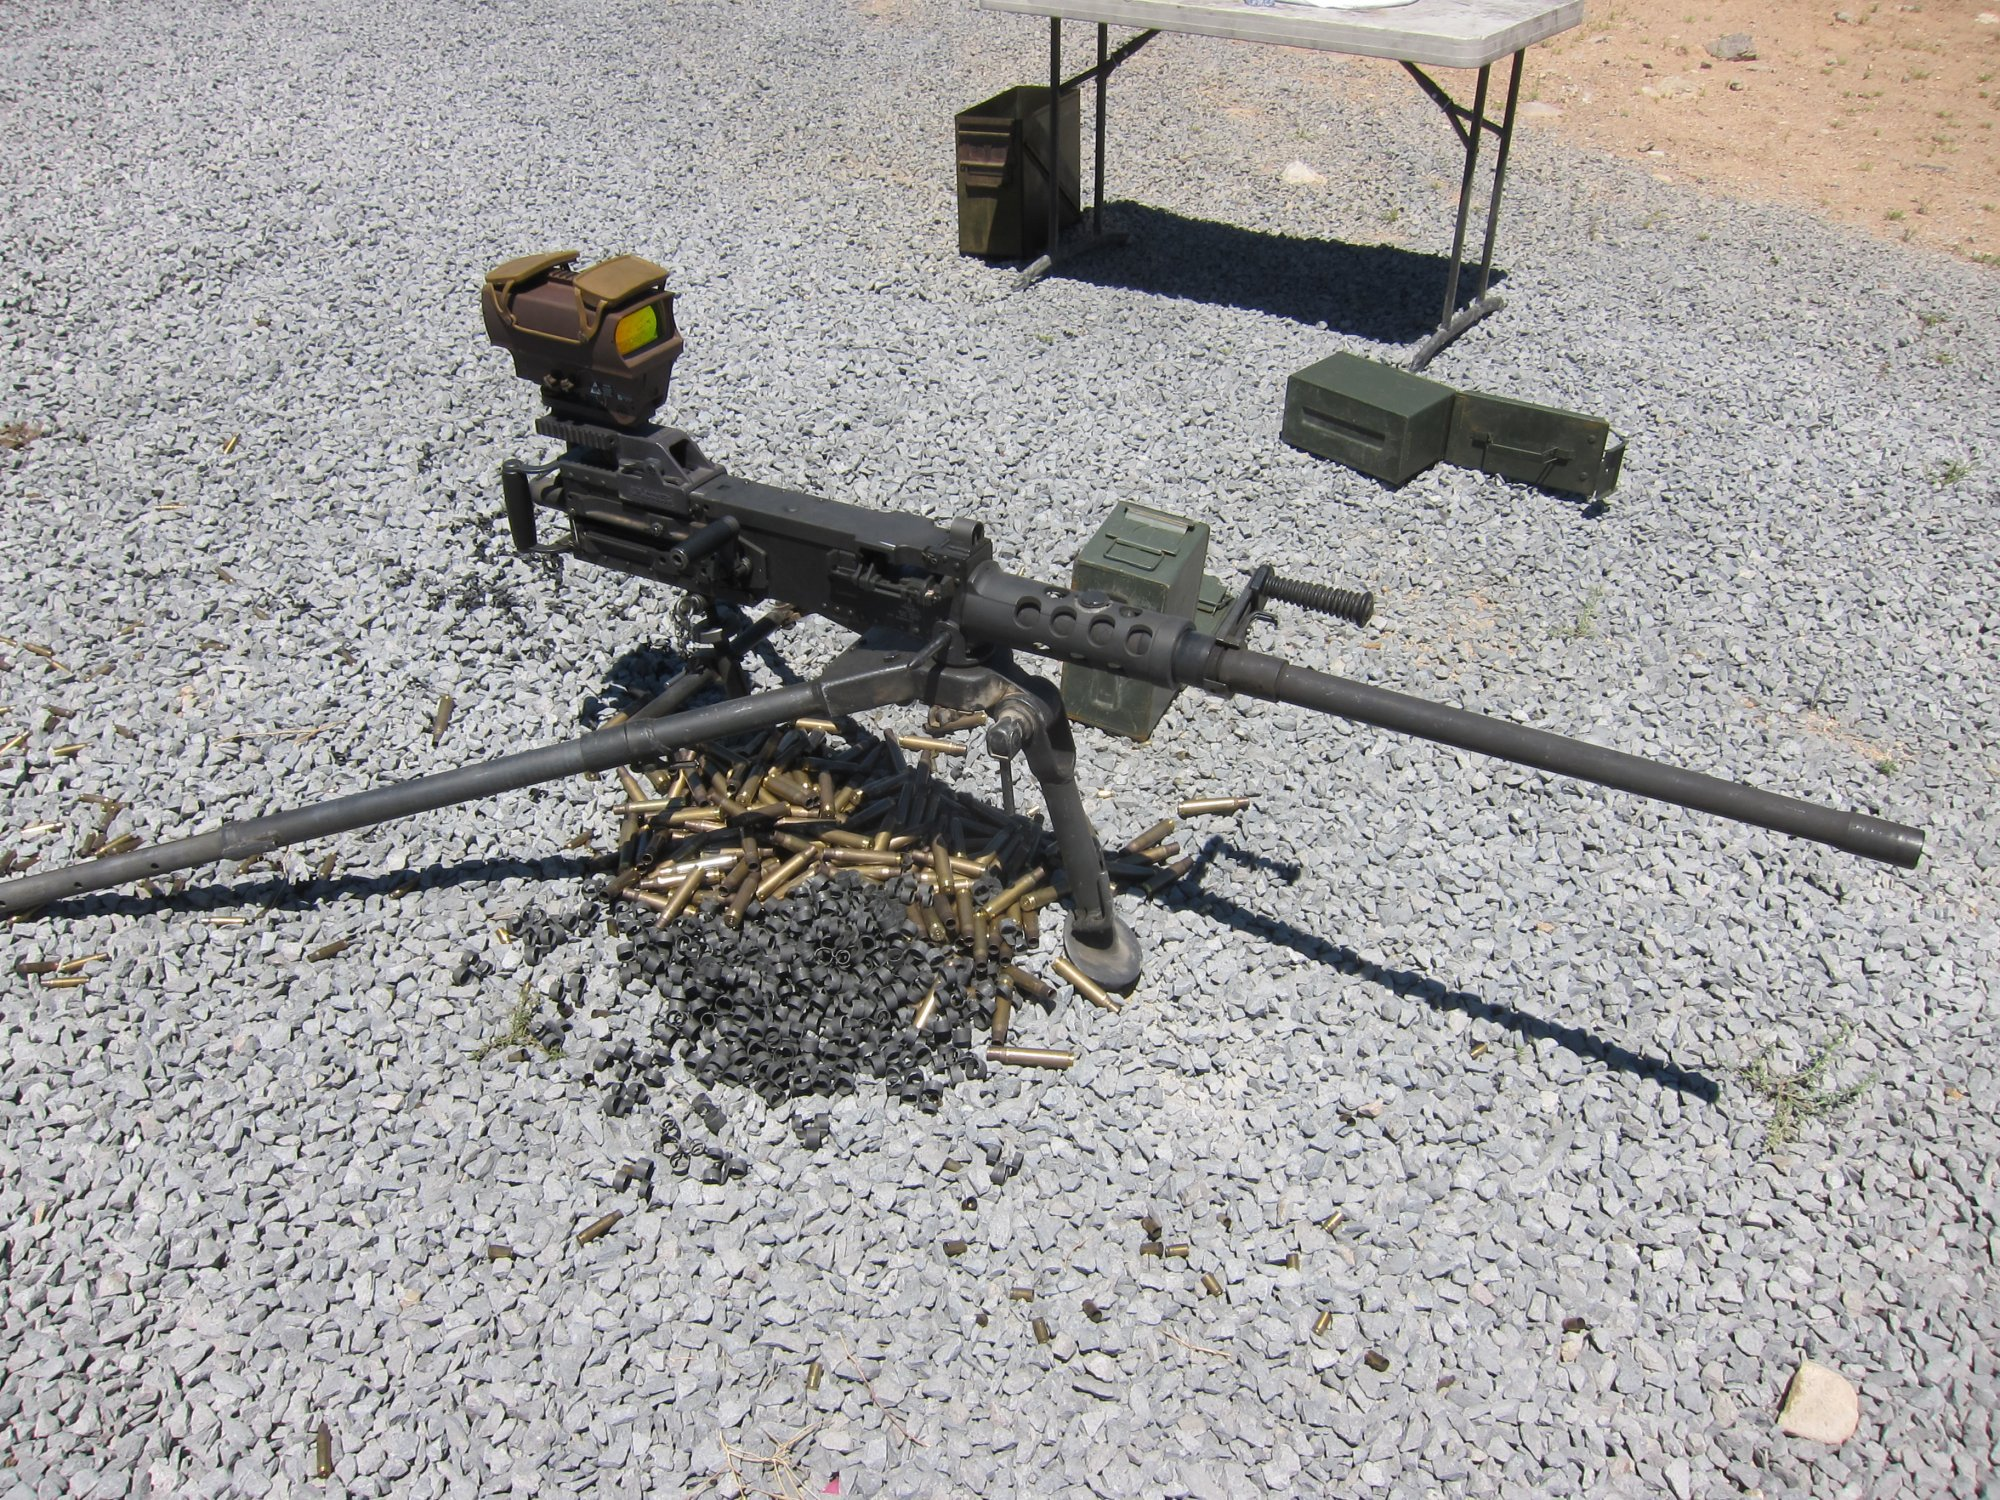 "<!--:en-->U.S. Ordnance M2HB-QCB (Quick-Change Barrel) ""Ma Deuce"" .50 BMG Heavy Machine Gun (HMG) Equipped with Raytheon ELCAN SpecterHR Wide-View Dual Red Dot Optical Gunsight Gets Test-Fired at the Range (Video!)<!--:-->"